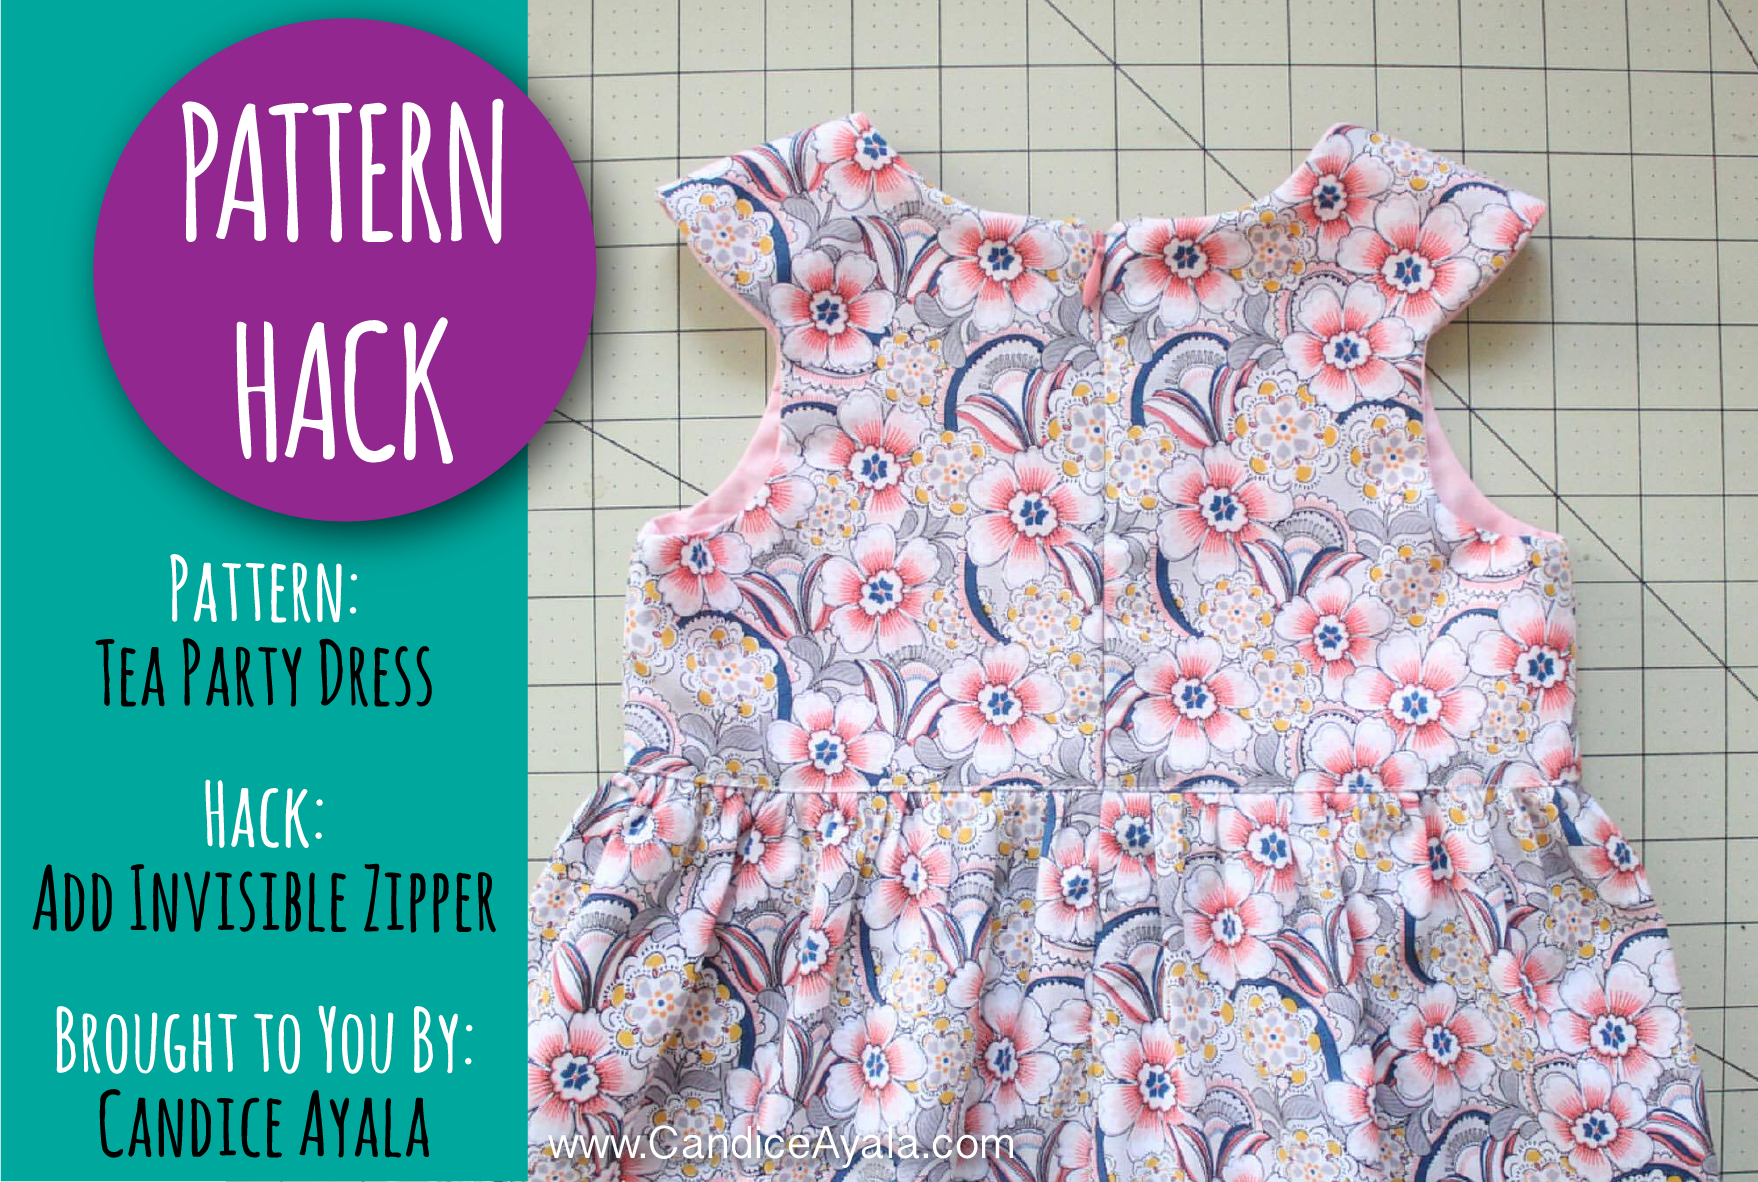 PATTERN HACK - Adding an invisible zip to the Tea Party Dress